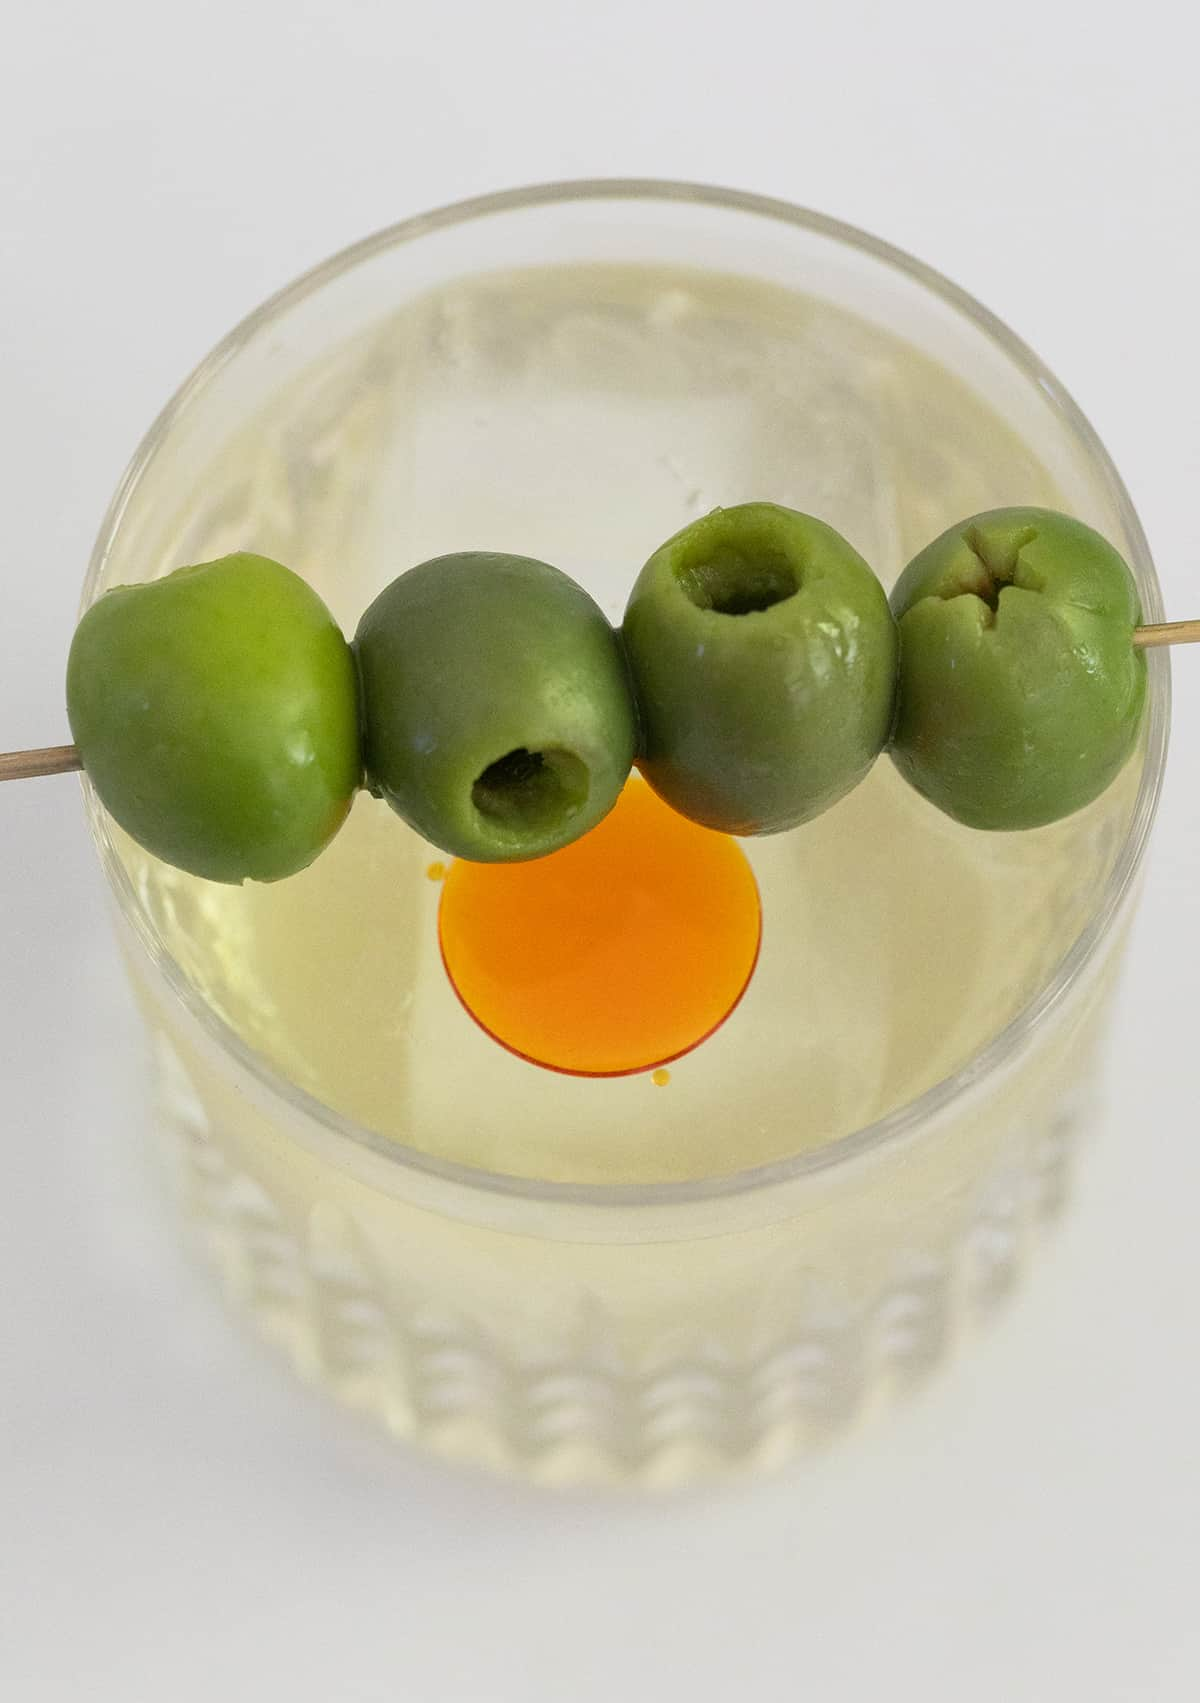 Green olives sitting over a dirty martini